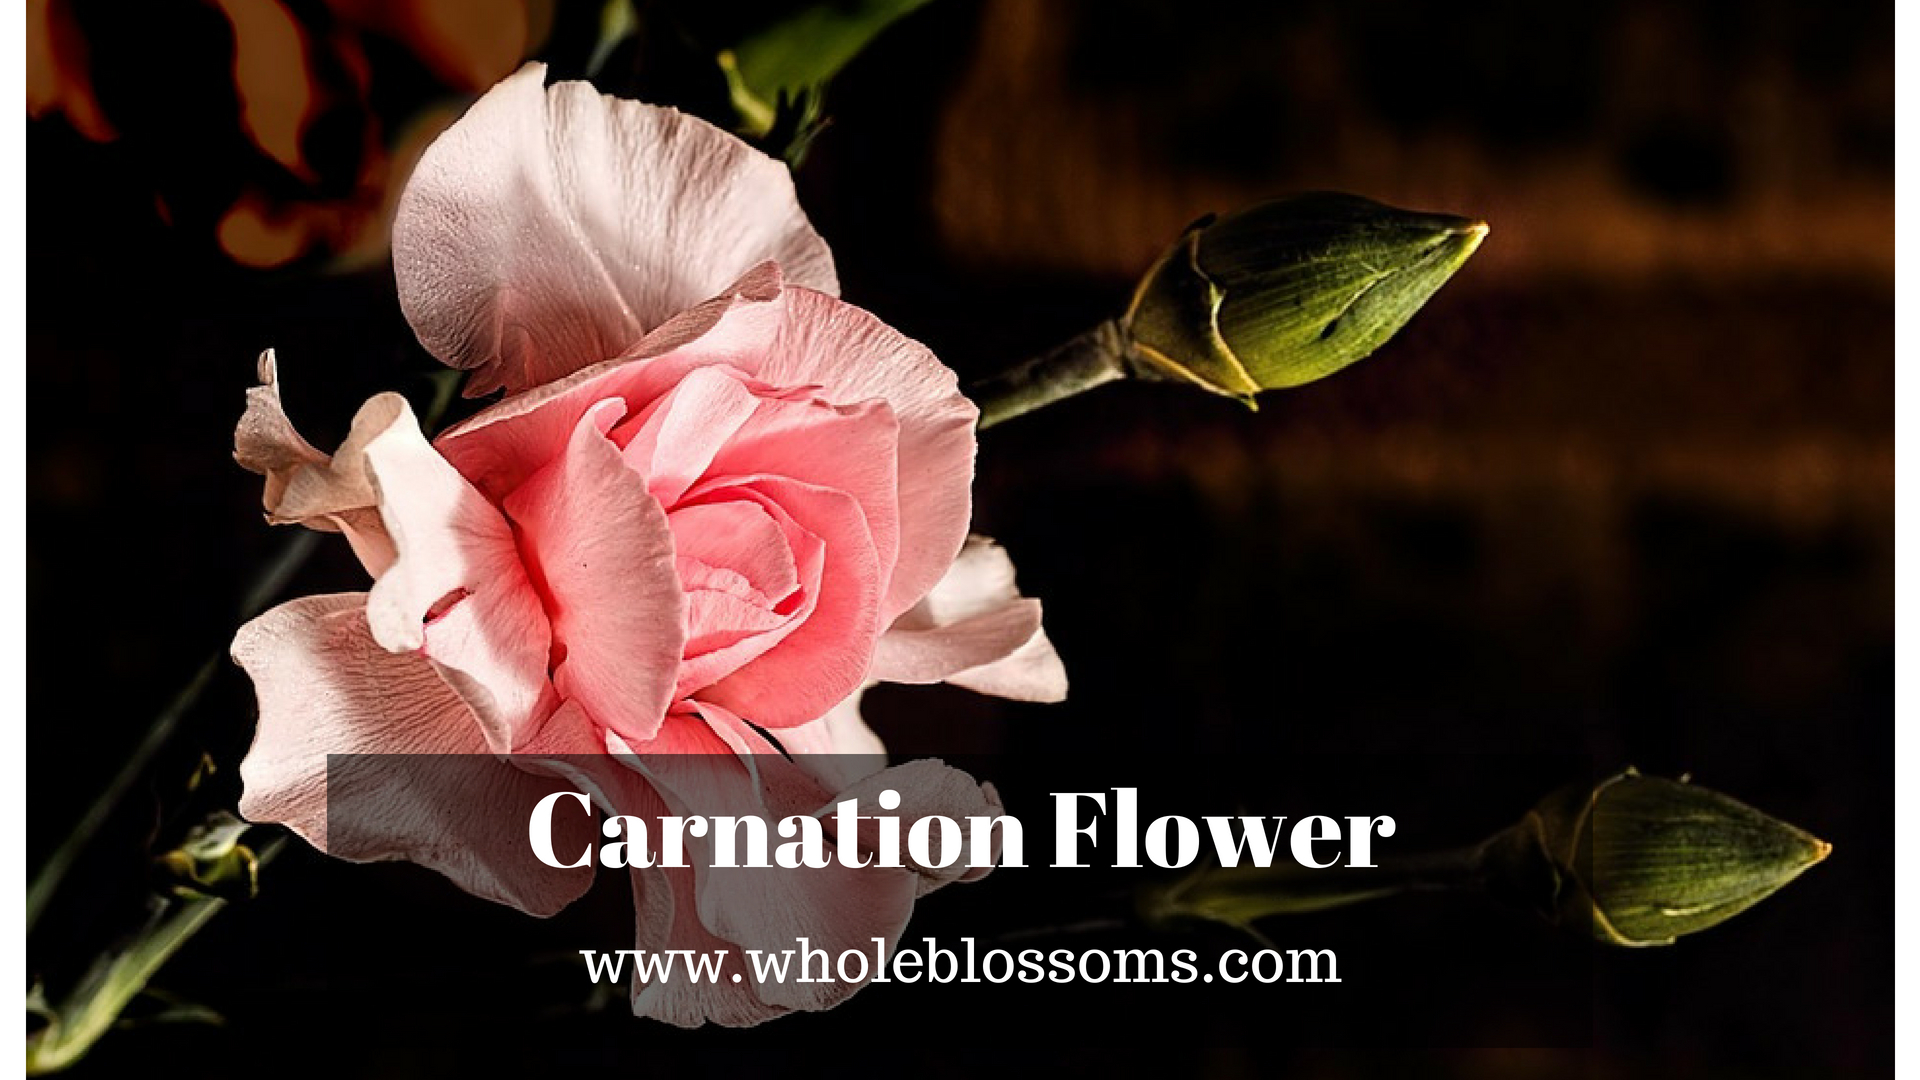 Buy Perfect Carnation Flower in Bulk for Your Special Day